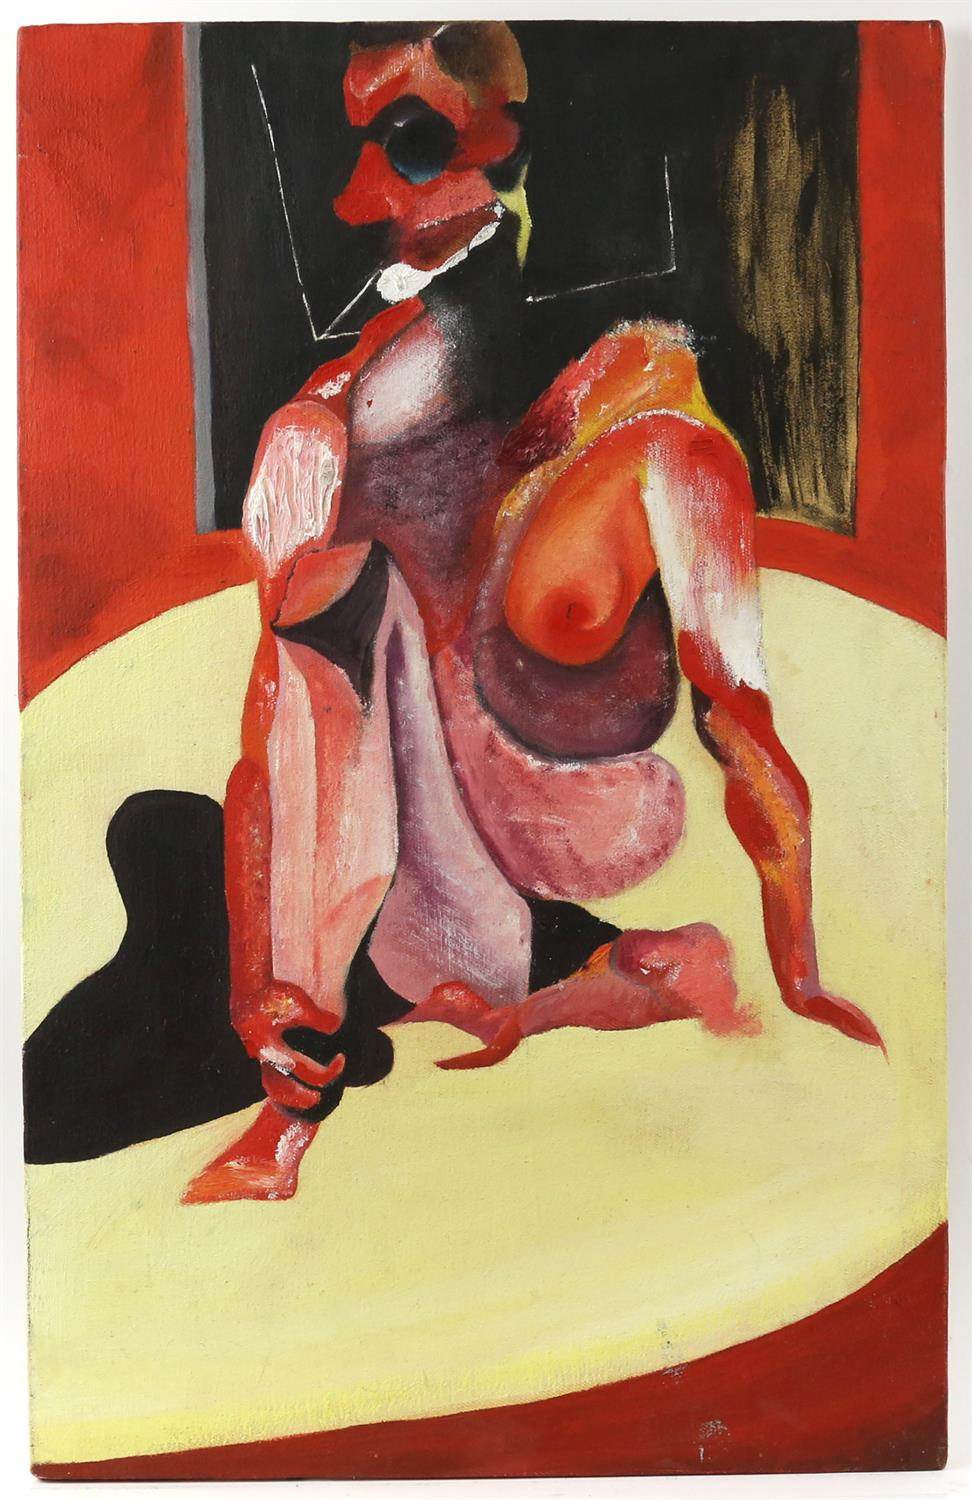 Unknown artist (signed 'Preston-Maher' verso). Nude figure in the style of Francis Bacon.